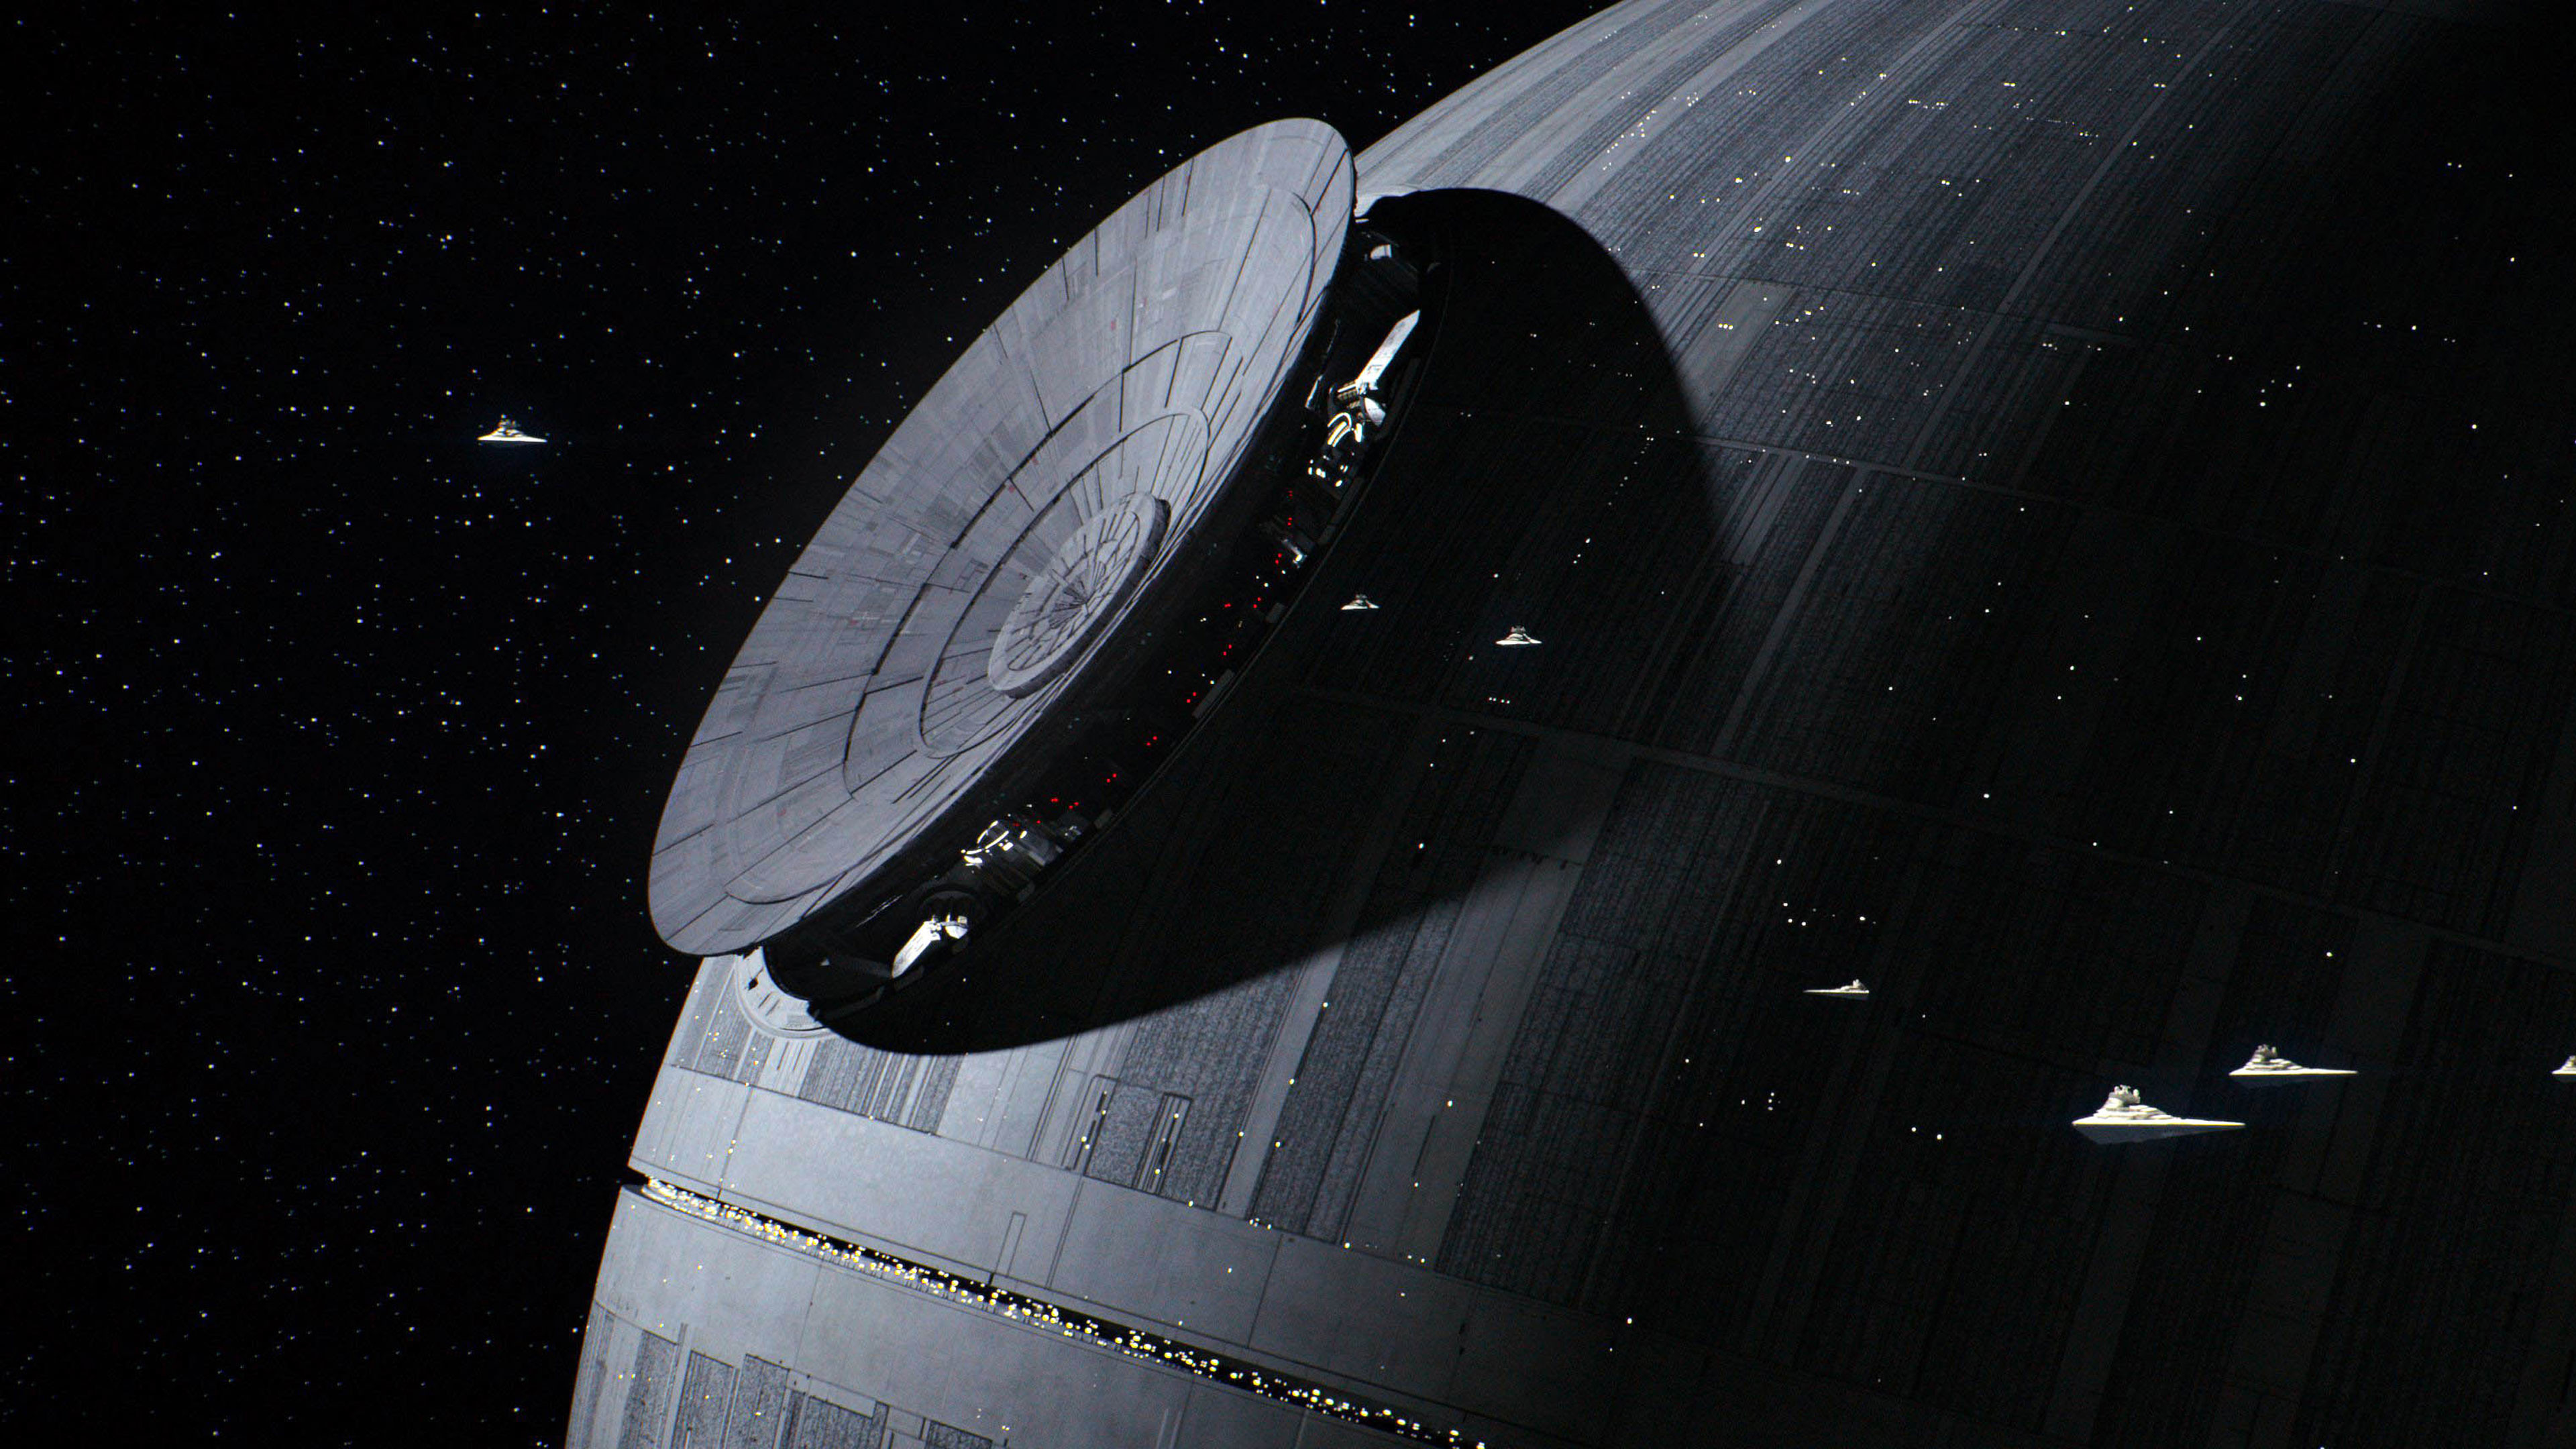 3840x2160 Star Wars Rogue One - Death Star  wallpaper